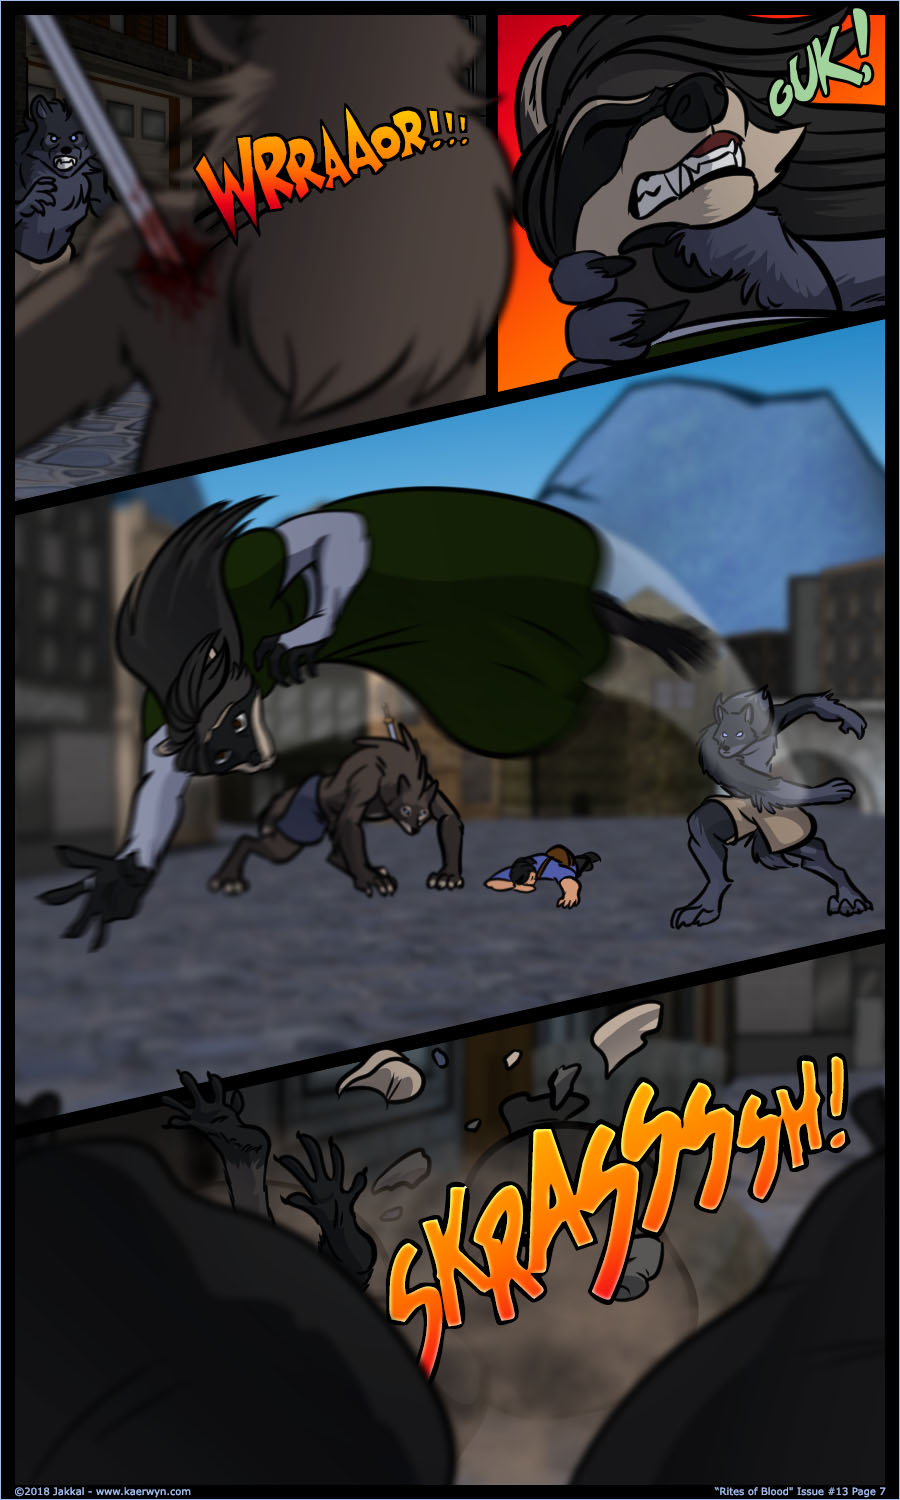 Issue 13 Page 7